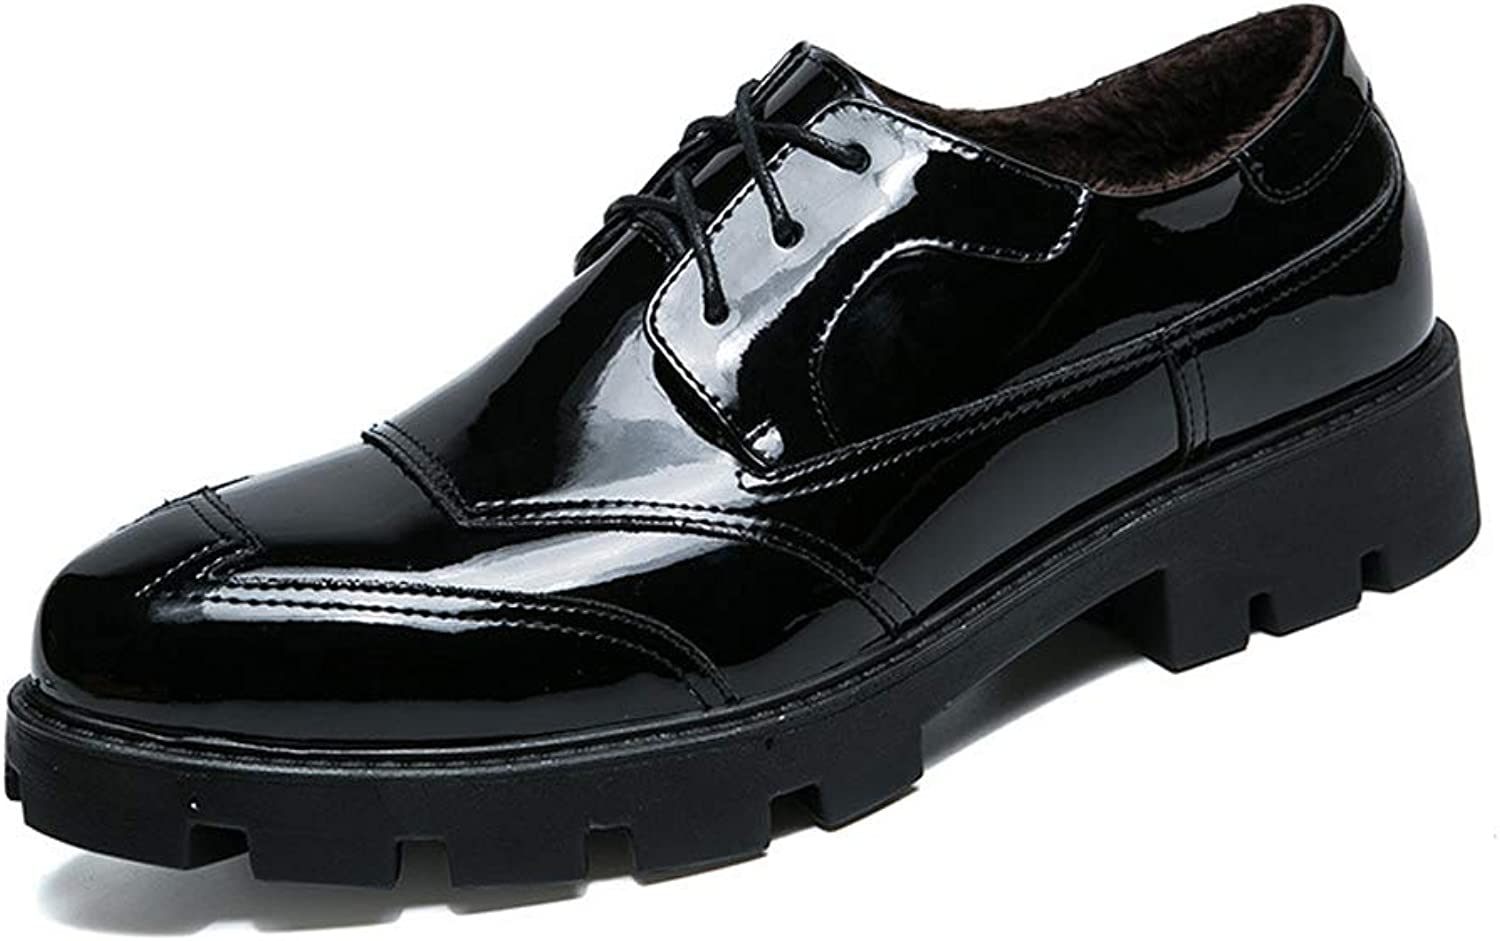 TYX-TT Men'S Casual shoes Leather Business Casual shoes Dress Wedding Men'S Leather shoes 'Black'